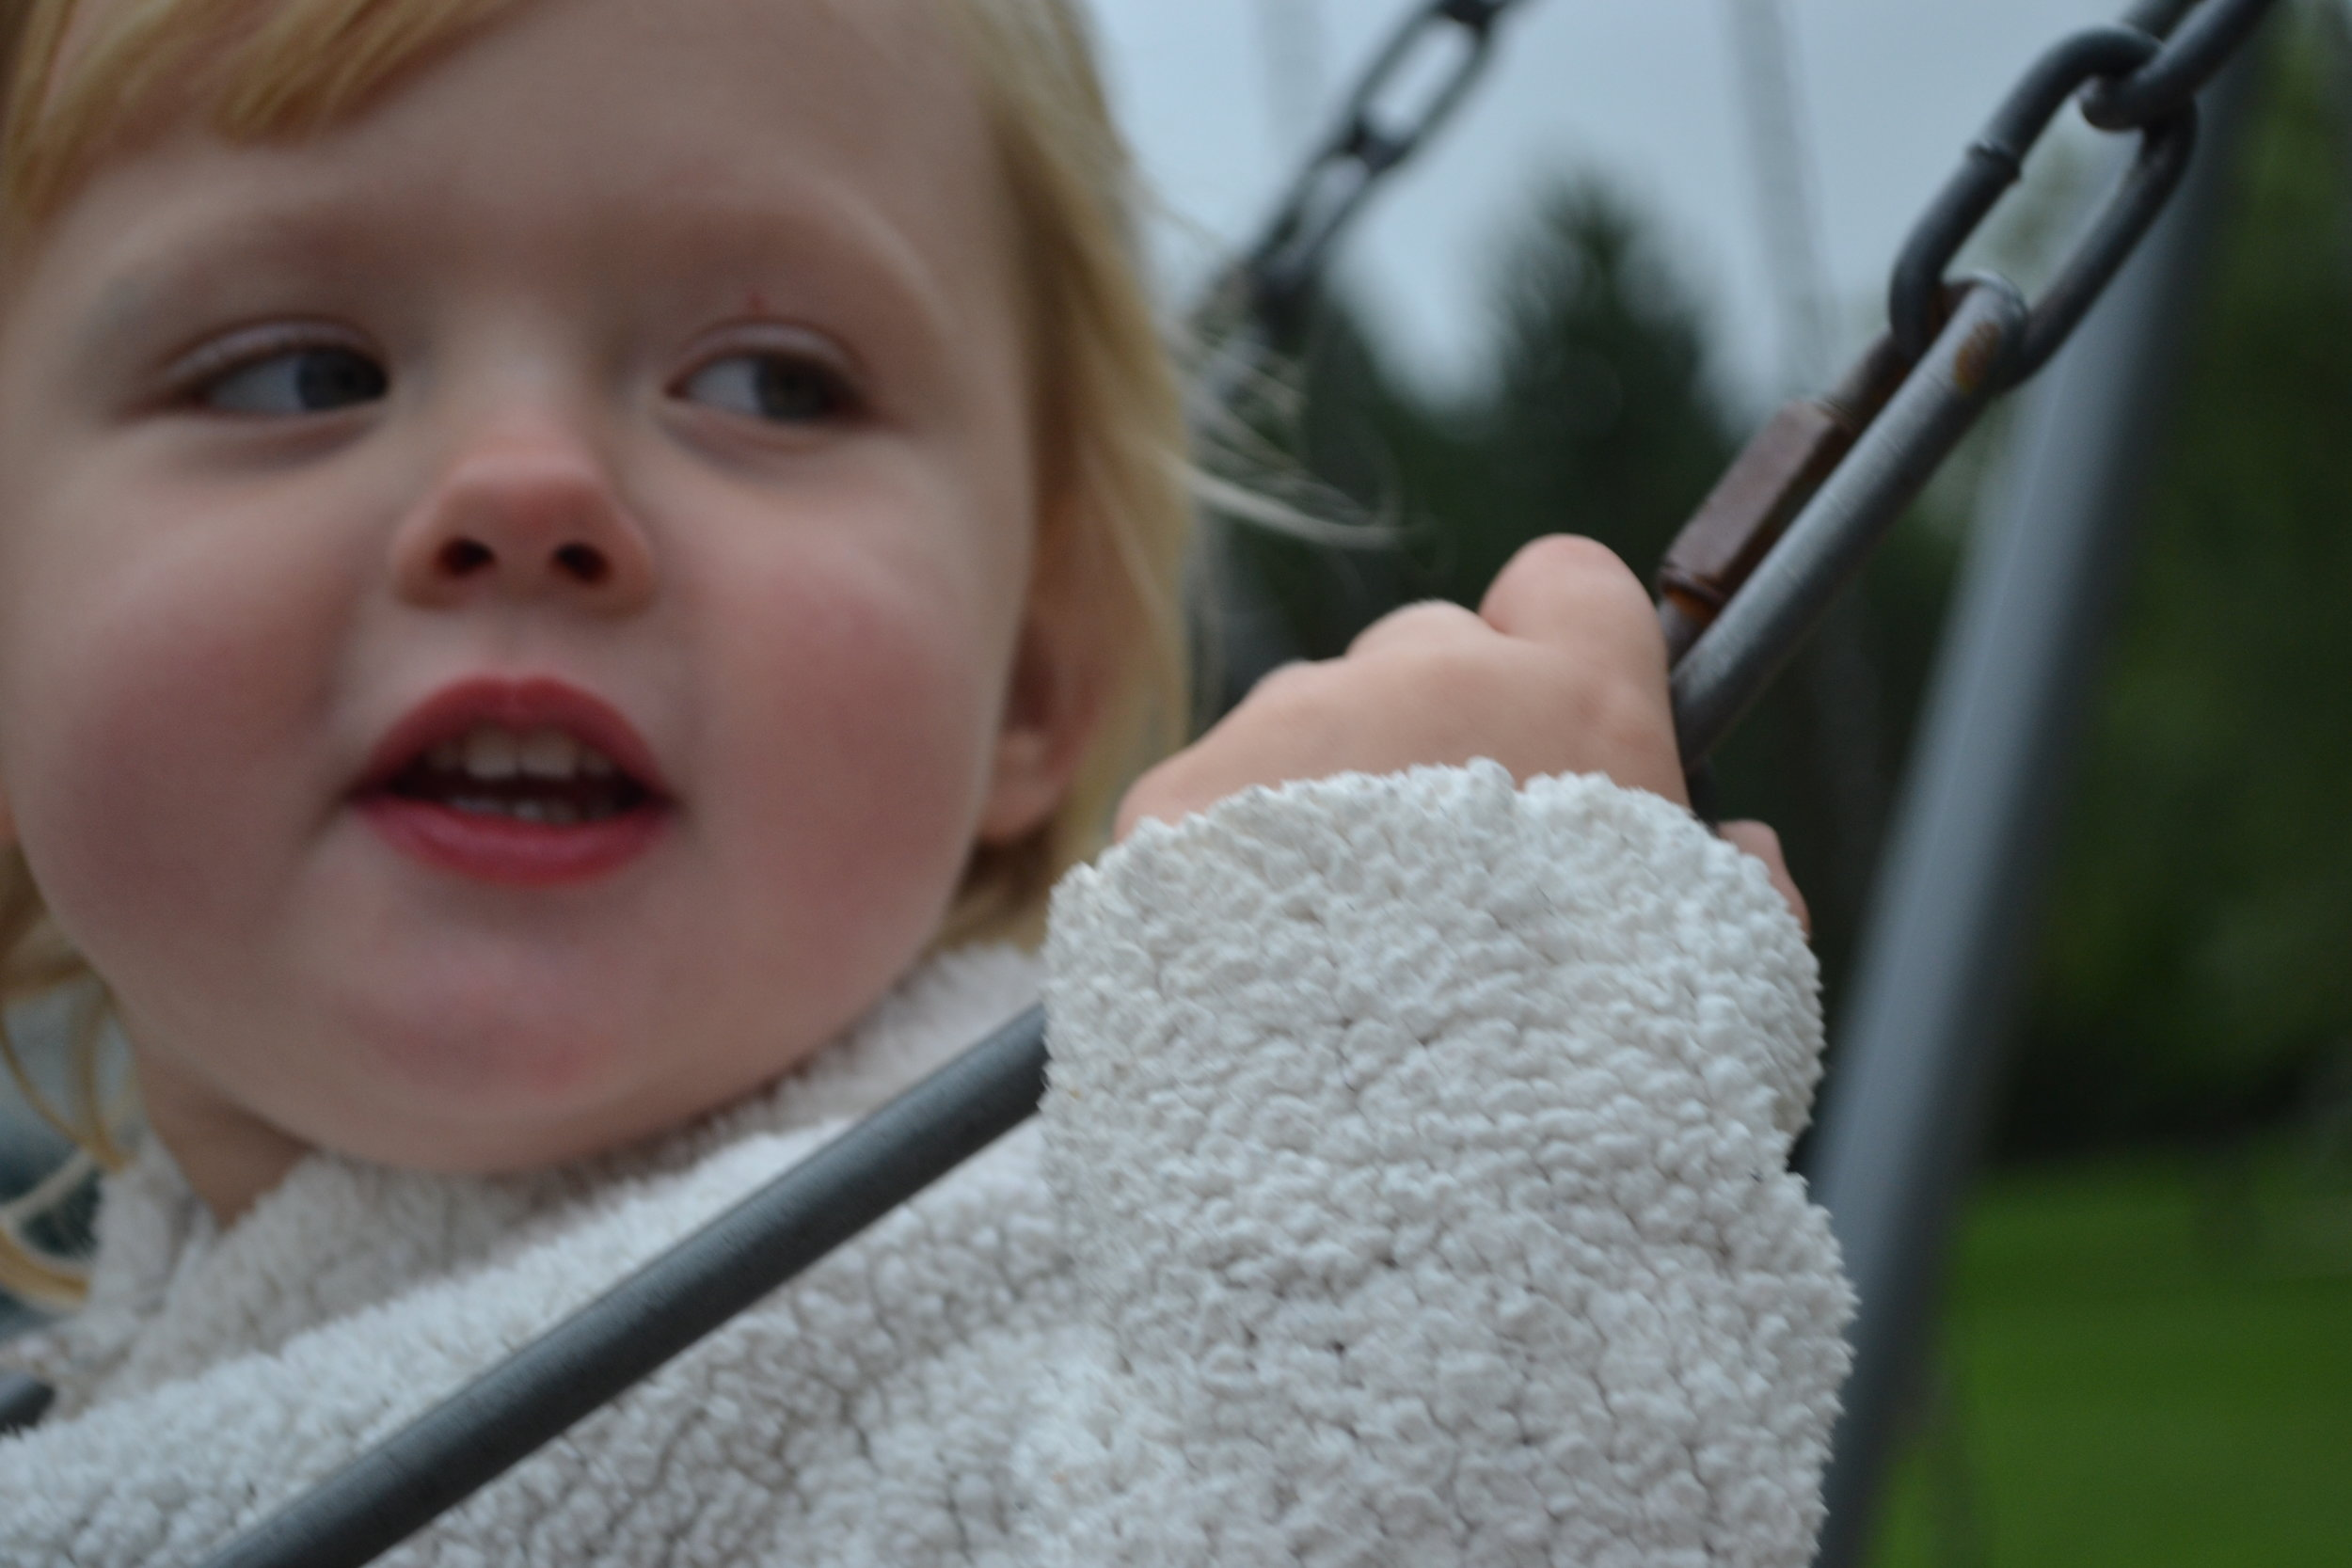 Nikon D3100. How do I get her face in focus and not her hand!!??